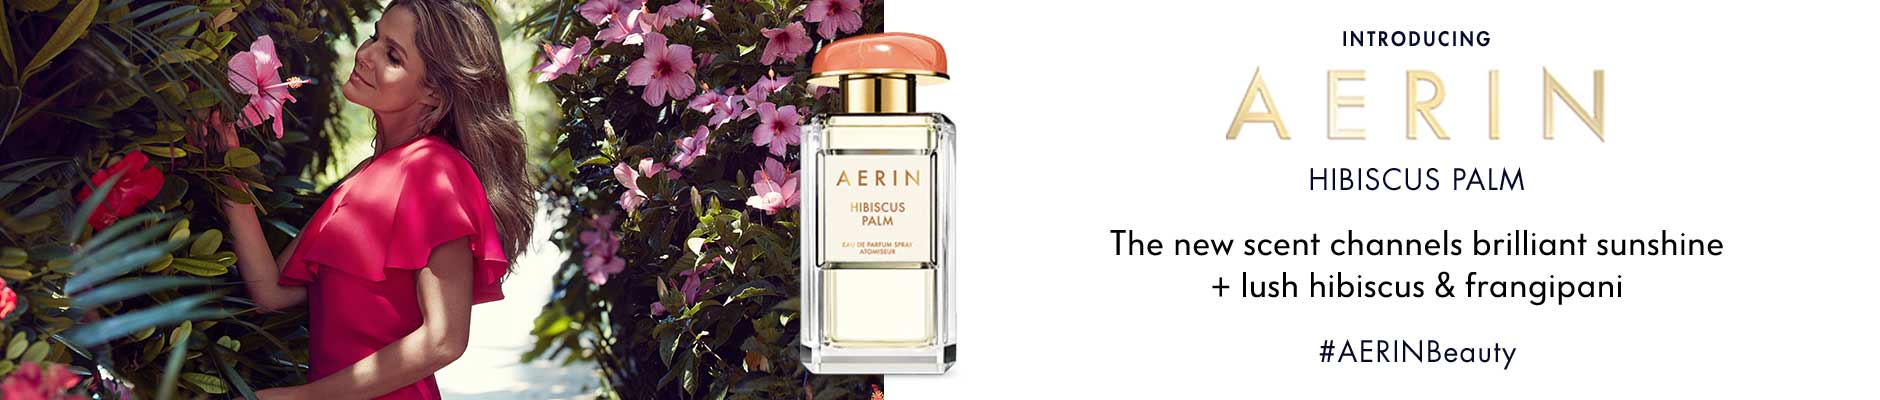 Introducing Aerin Hibiscus Palm - The new scent channels brilliant sunshine + lush hibiscus & frangipani